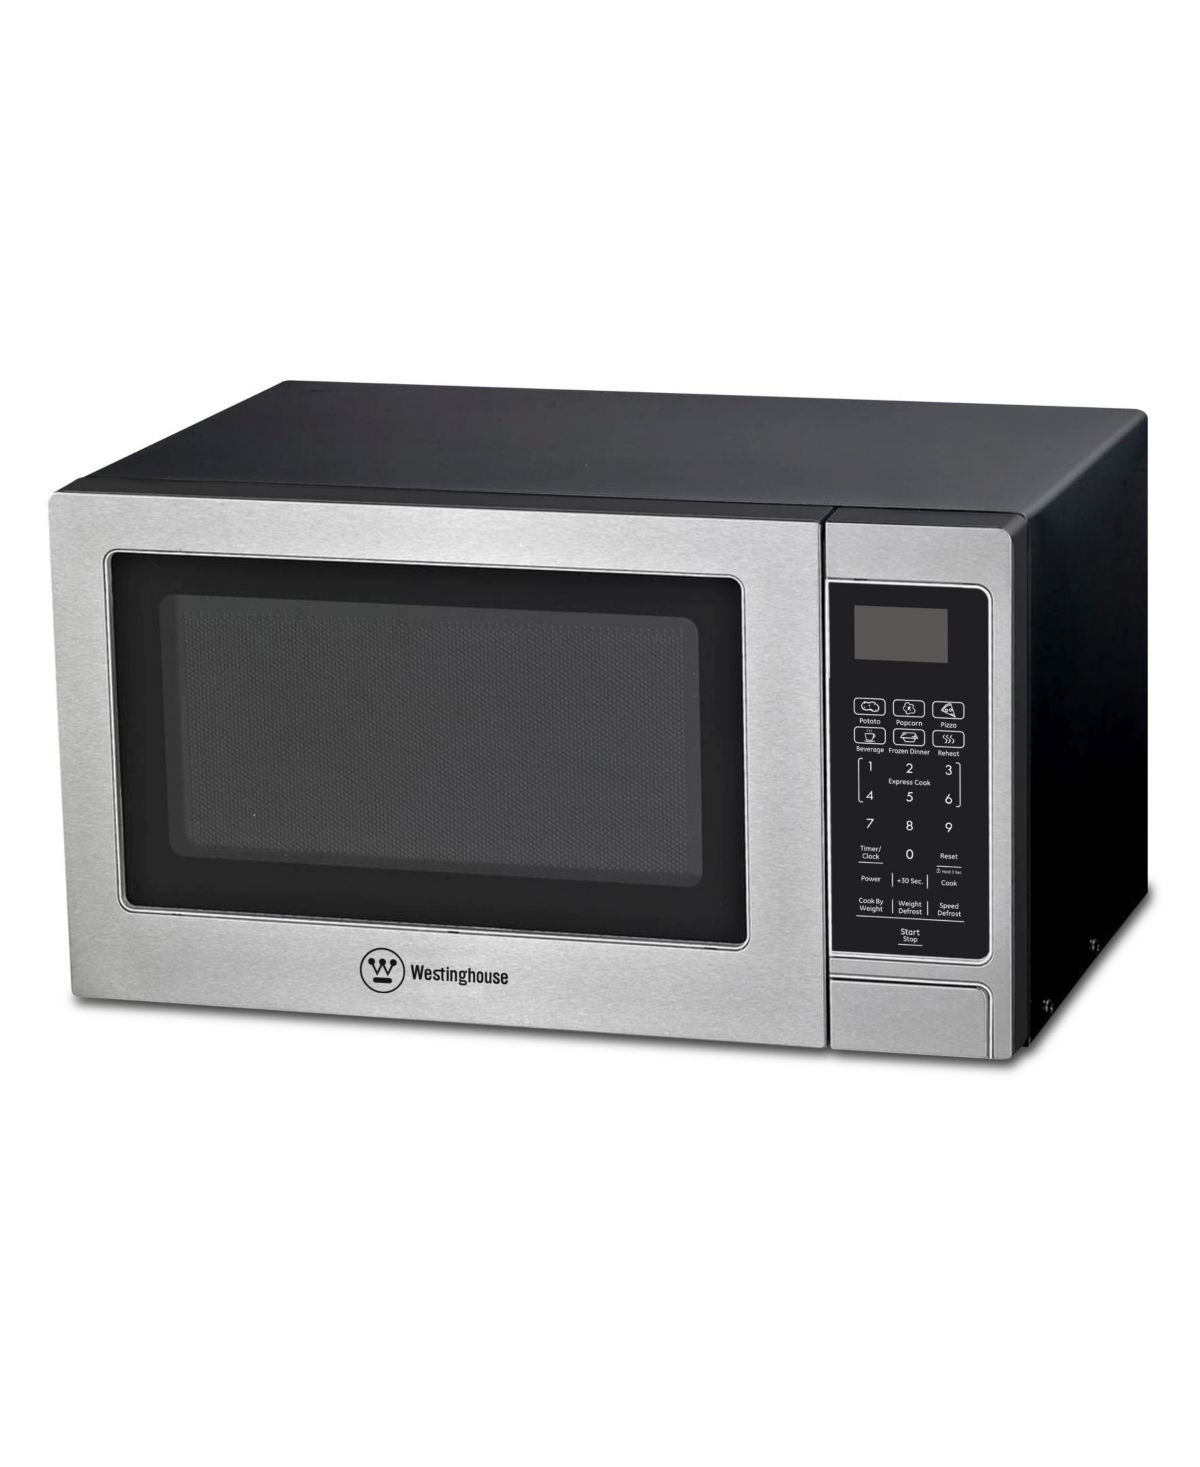 Westinghouse Microwave Oven Reviews Small Appliances Kitchen Macy S In 2020 Microwave Oven Microwave Countertop Microwave Oven